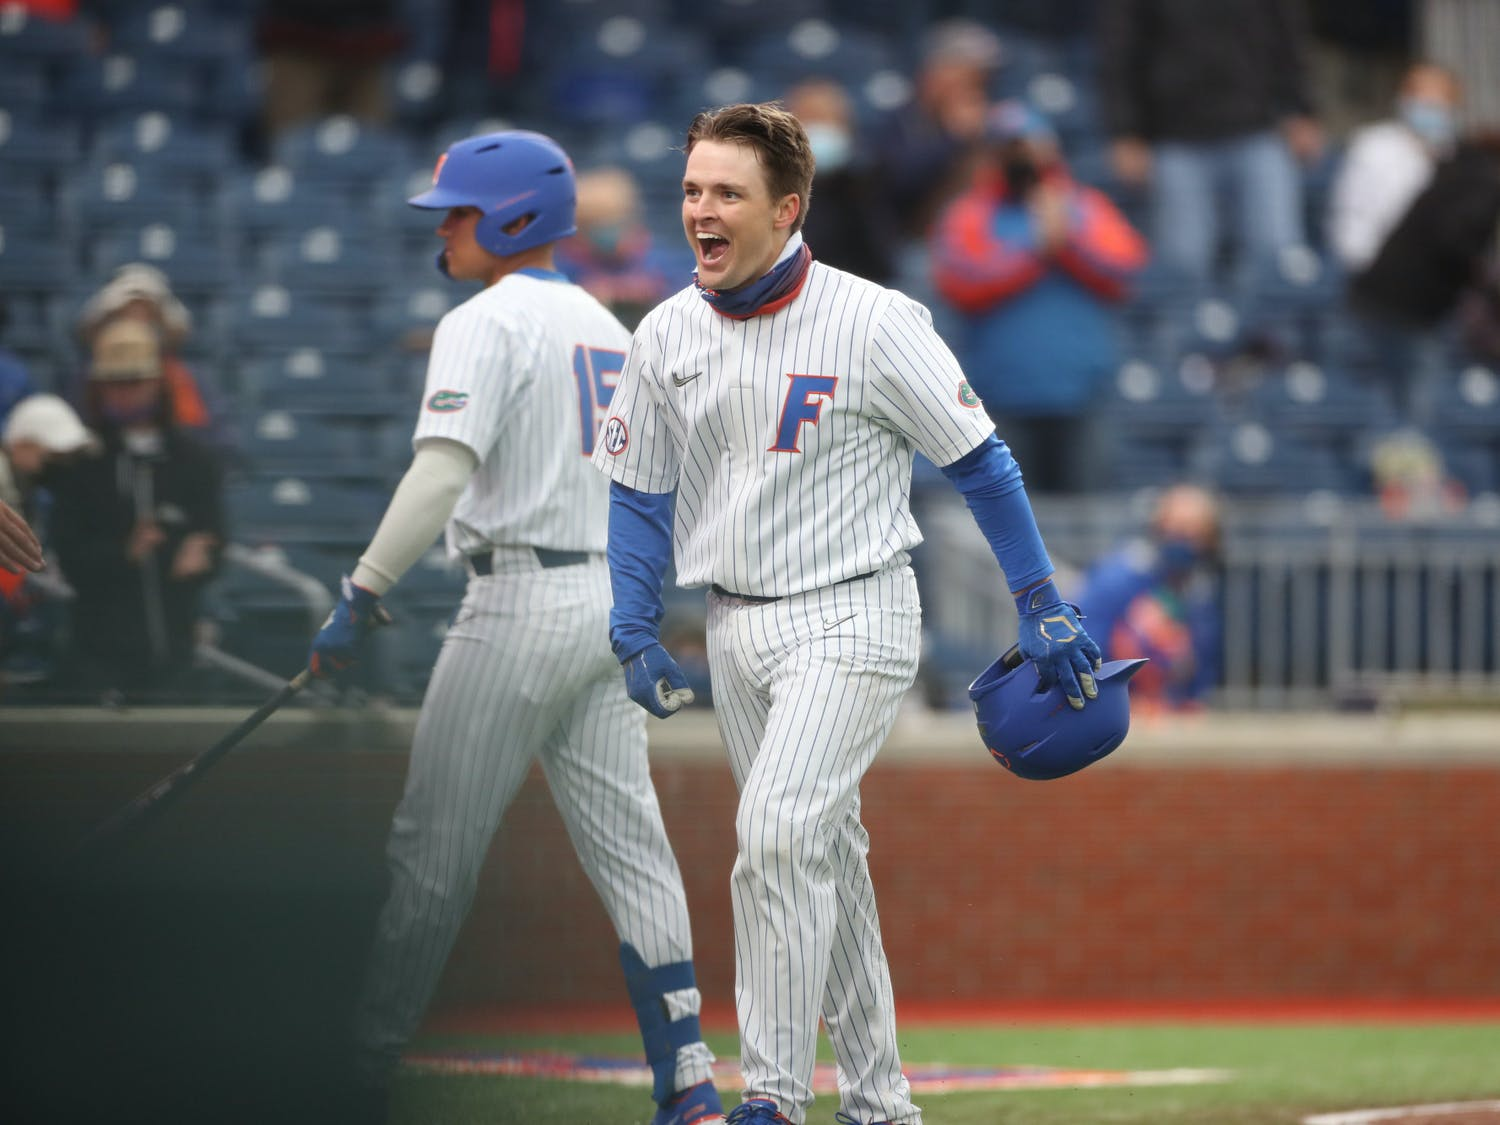 Another round of lockdown pitching carried the Gators to a 5-1 win against Georgia State. Photo from UF-UM game Feb. 19. Courtesy of the SEC Media Portal.